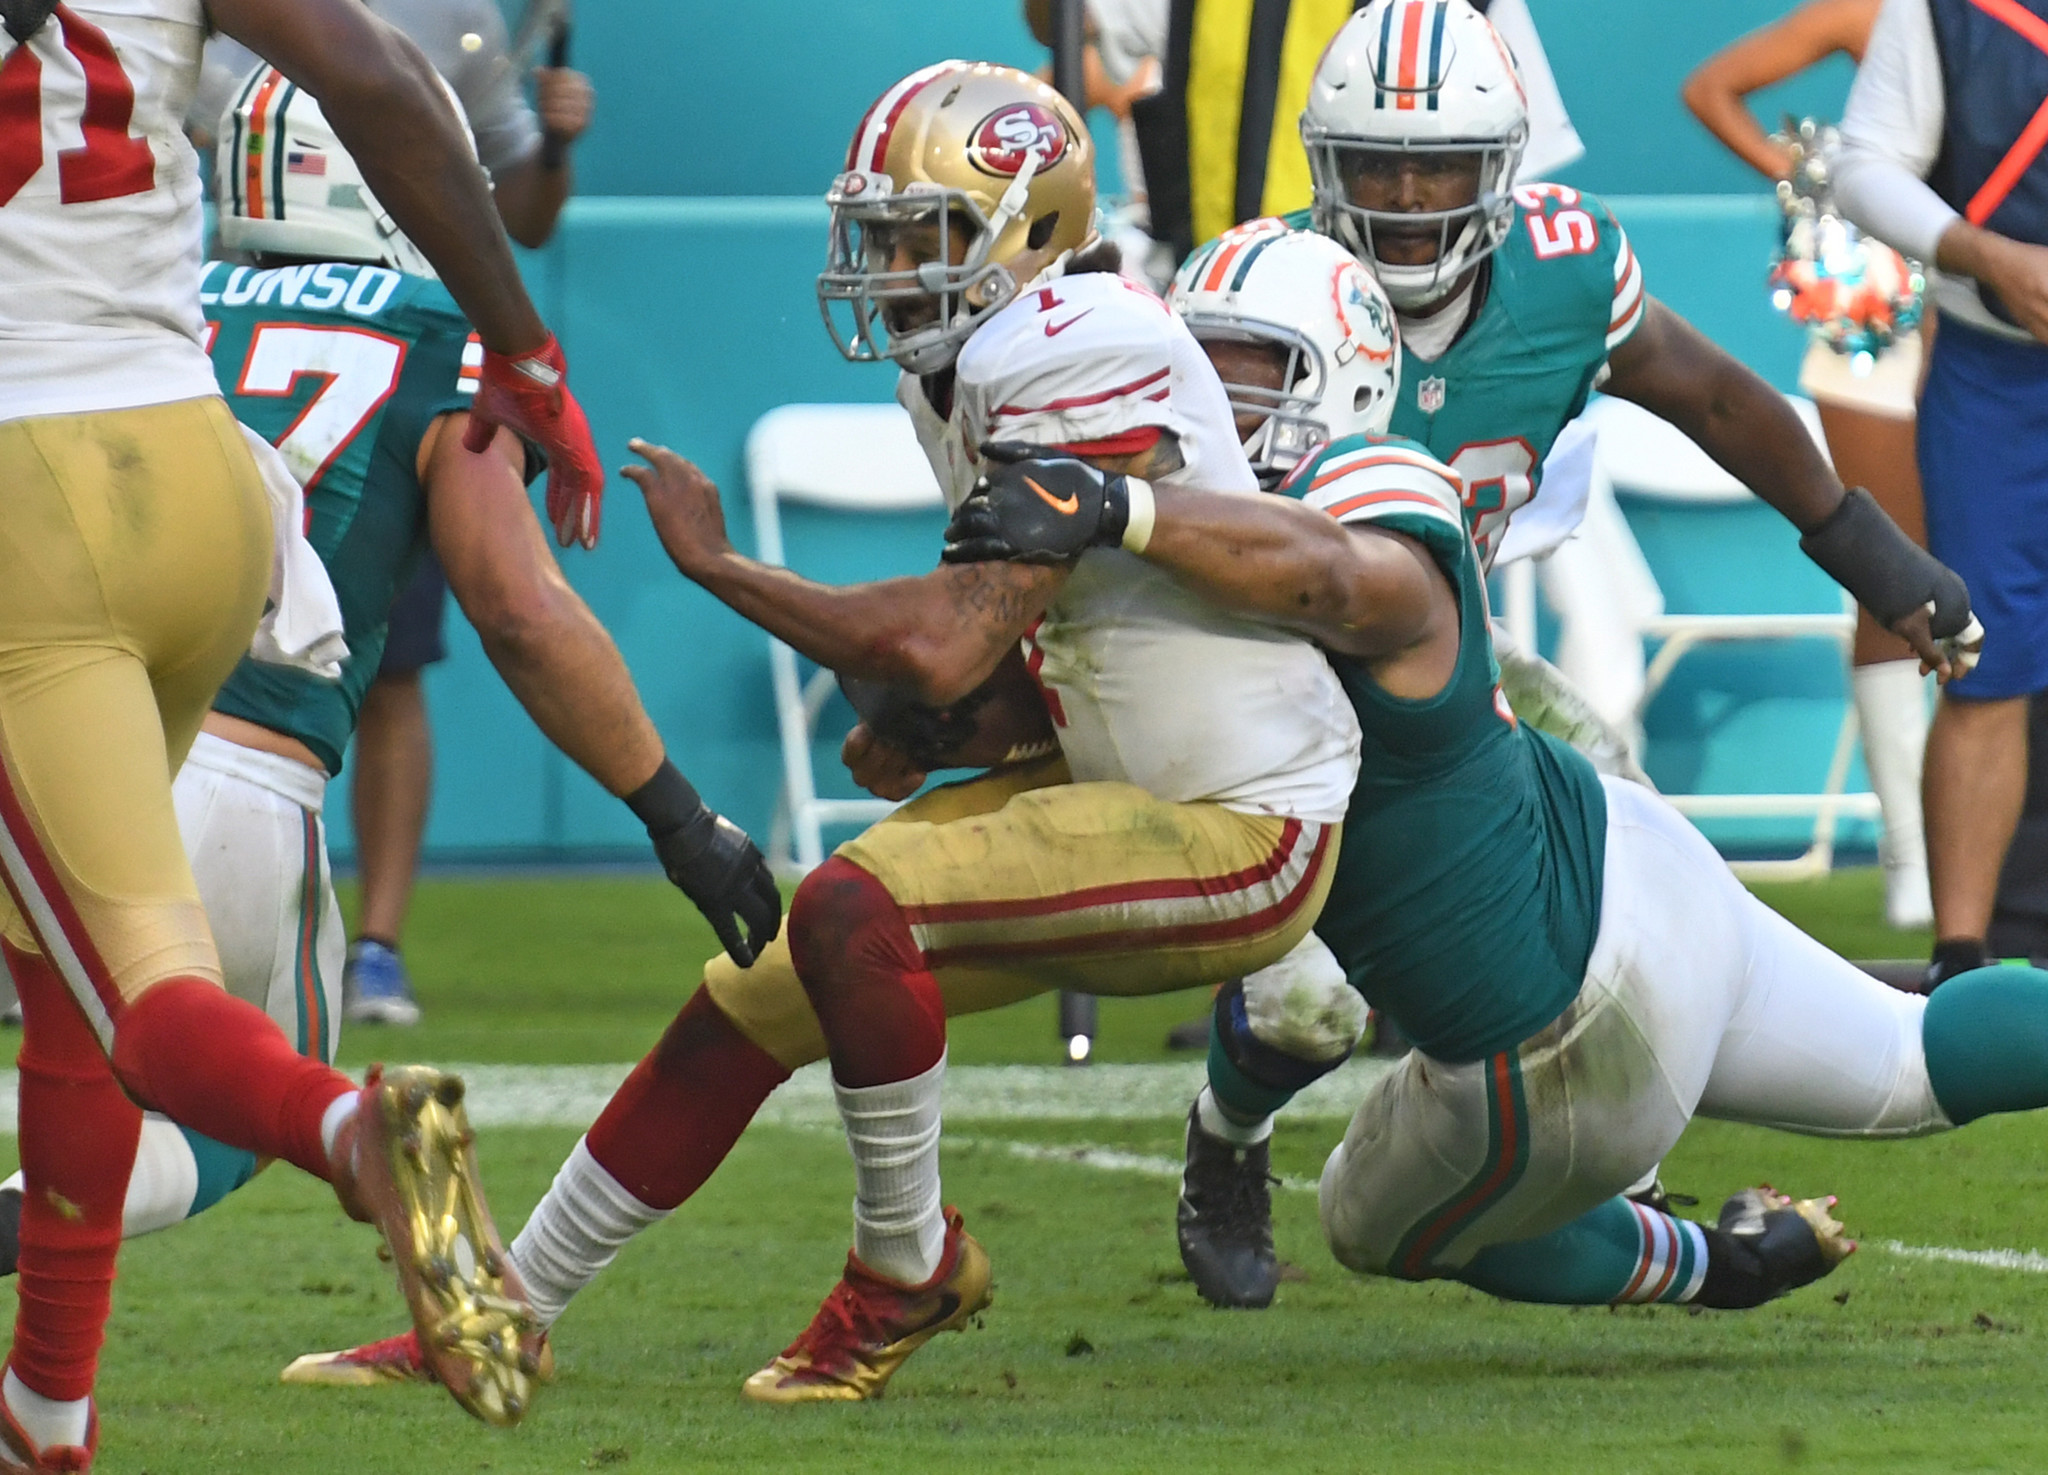 Fl-dolphins-1202-20161201